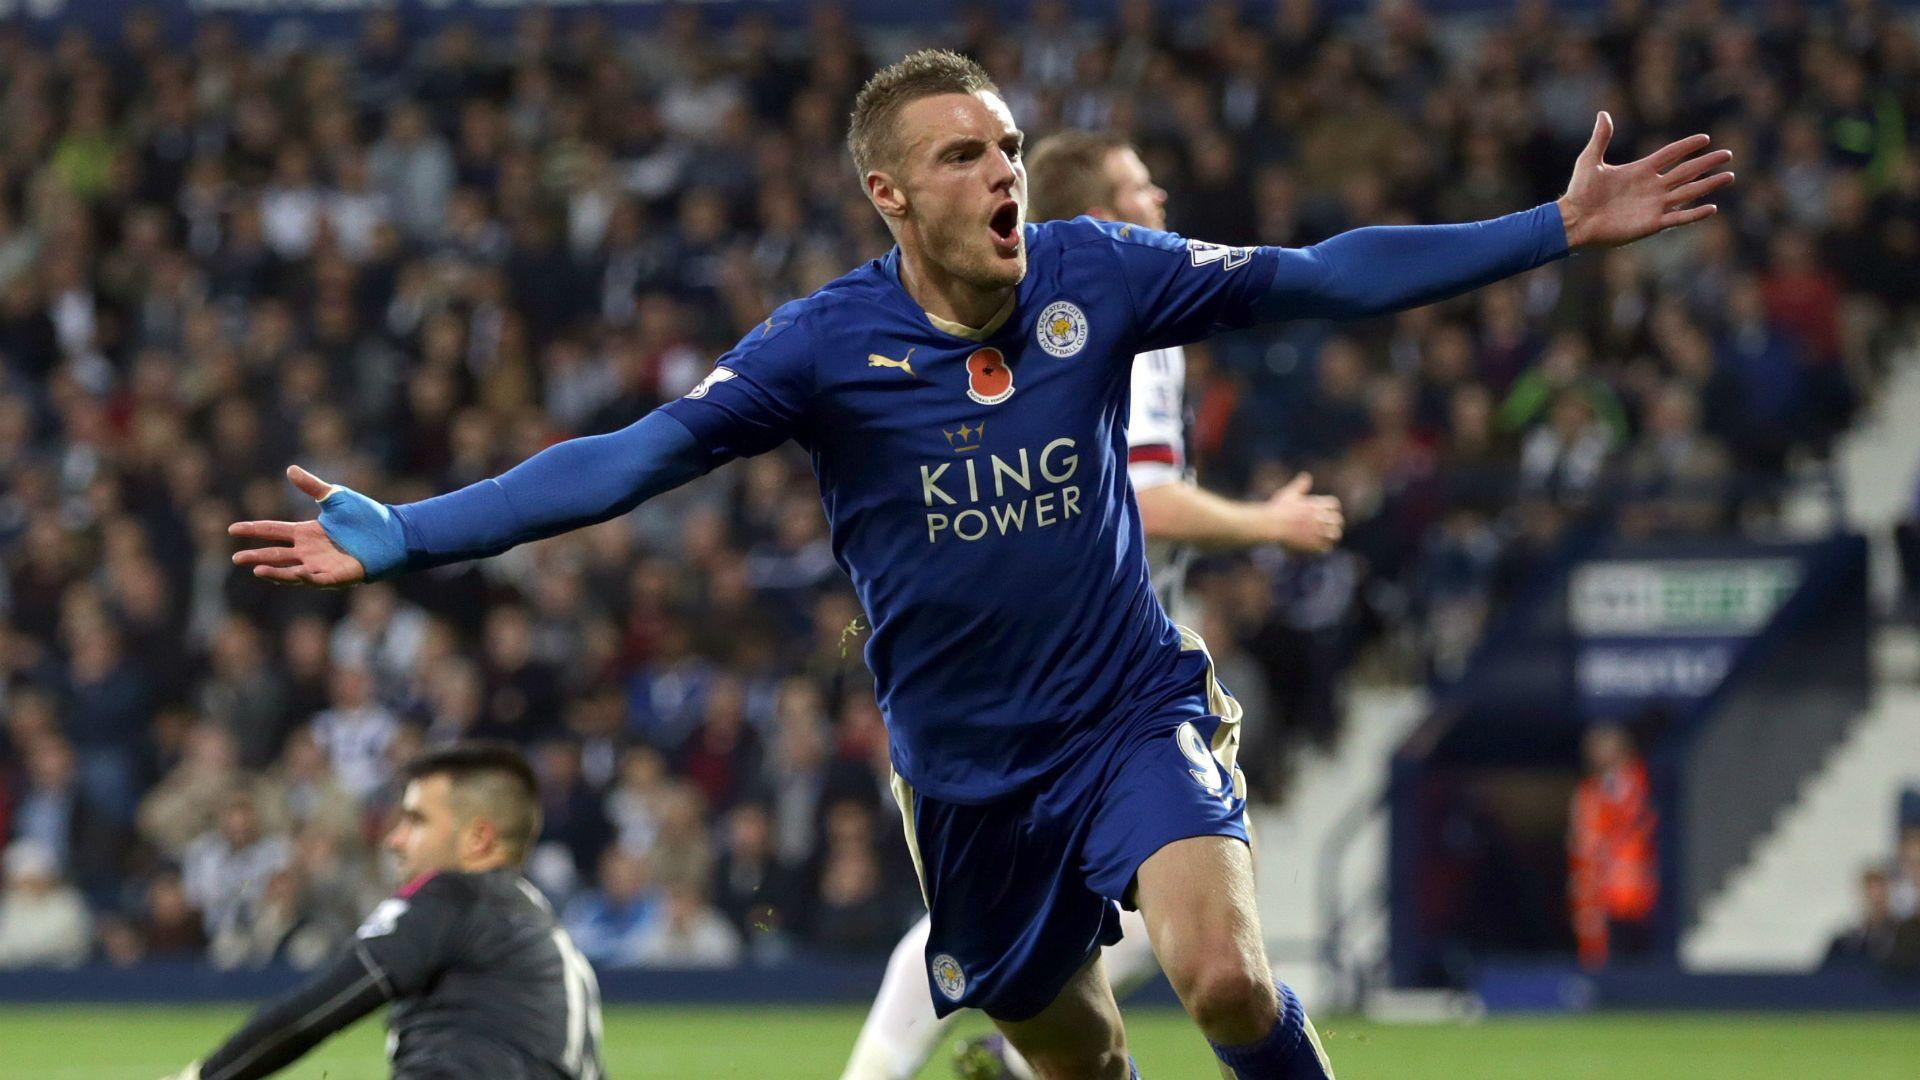 17 Best images about Vardy on Pinterest | Seasons, Football and ...